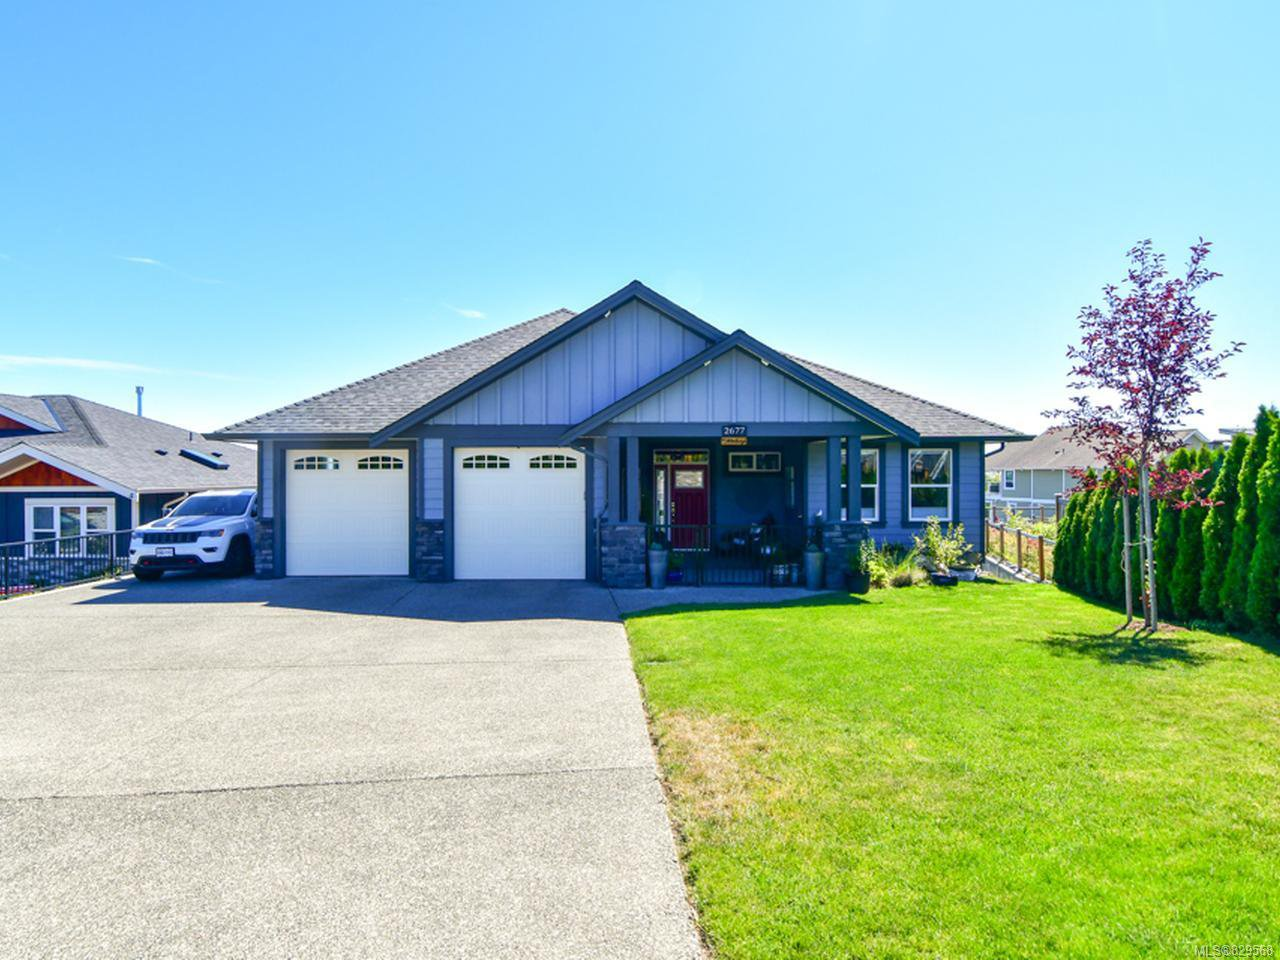 Main Photo: 2677 SUNDERLAND ROAD in CAMPBELL RIVER: CR Willow Point House for sale (Campbell River)  : MLS®# 829568